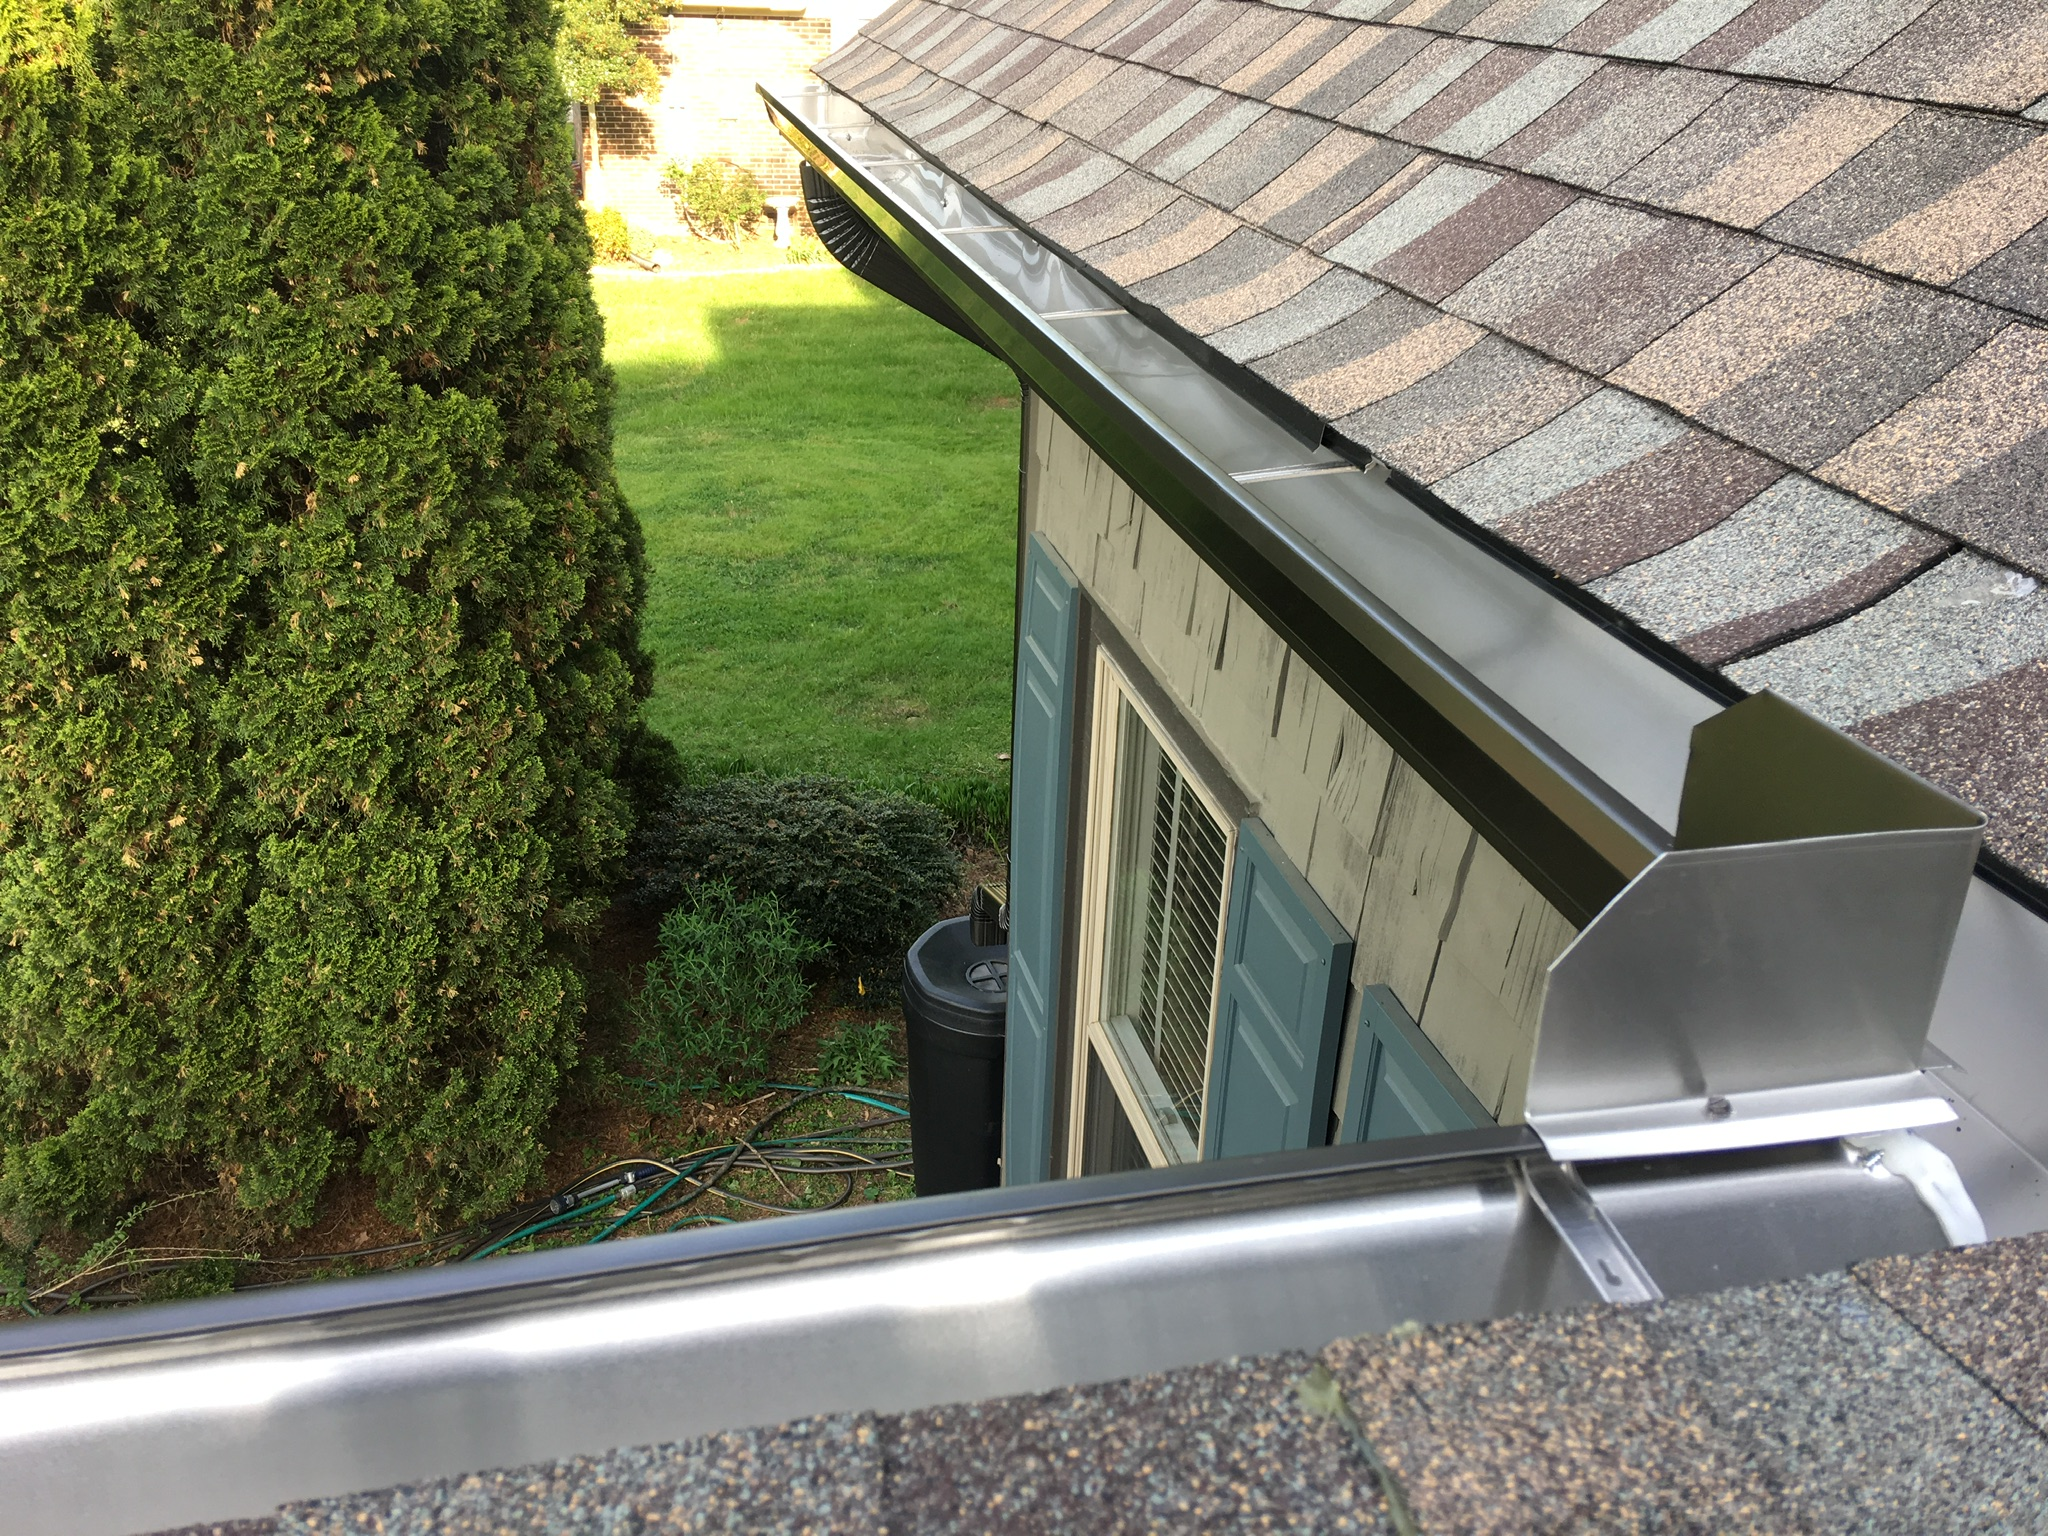 This is a view of the gutters with gutter screens installed to prevent leaves clogging the gutters.